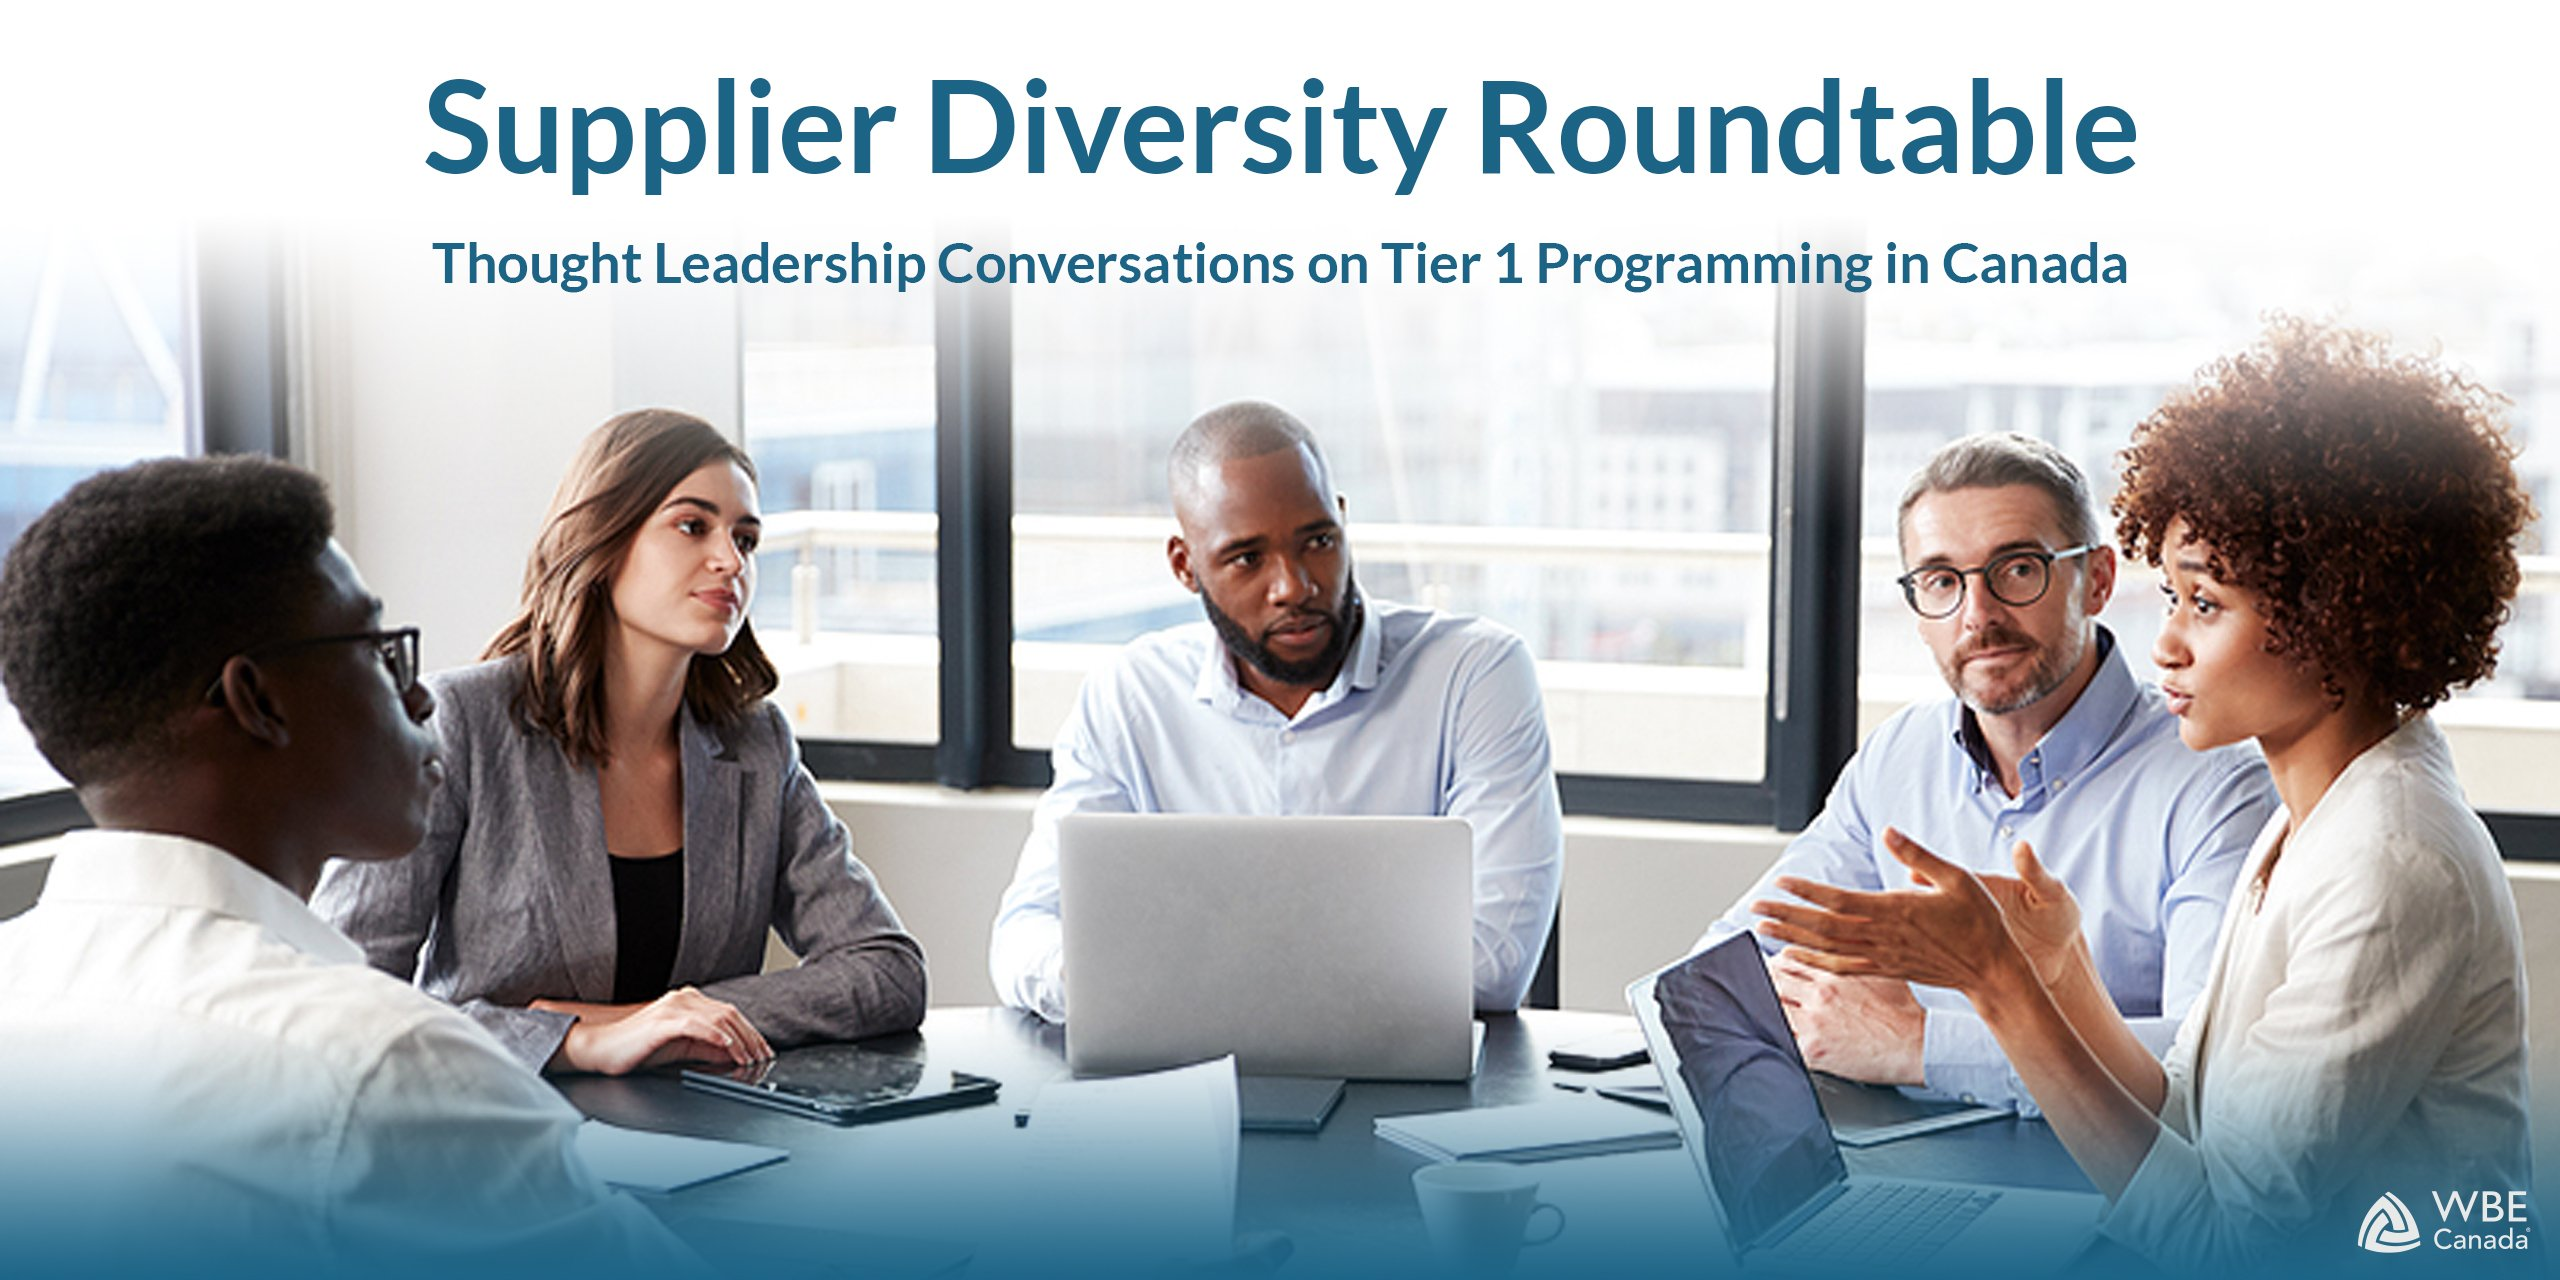 Supplier Diversity Roundtable